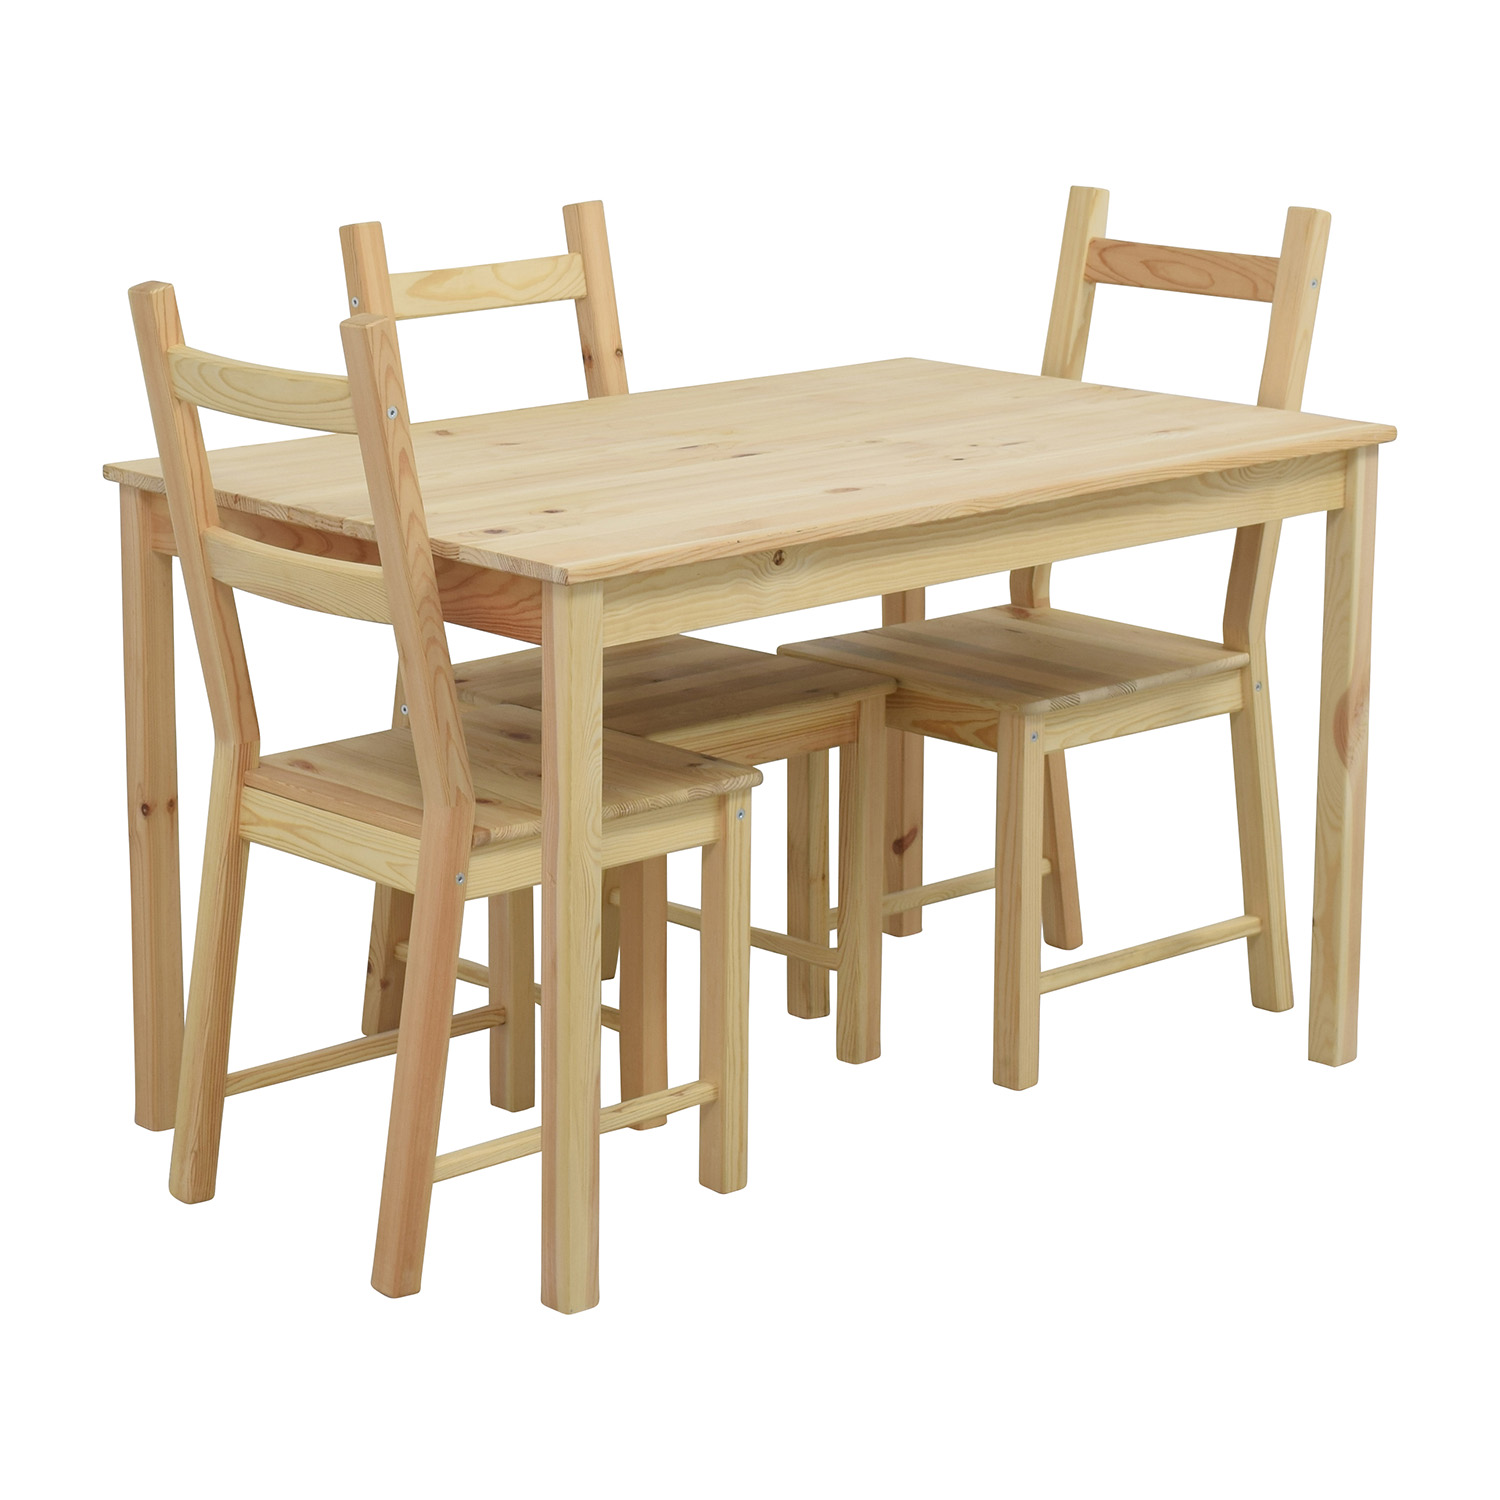 pine kitchen chairs ireland childrens upholstered uk ikea chair ivar solid dining room ebay